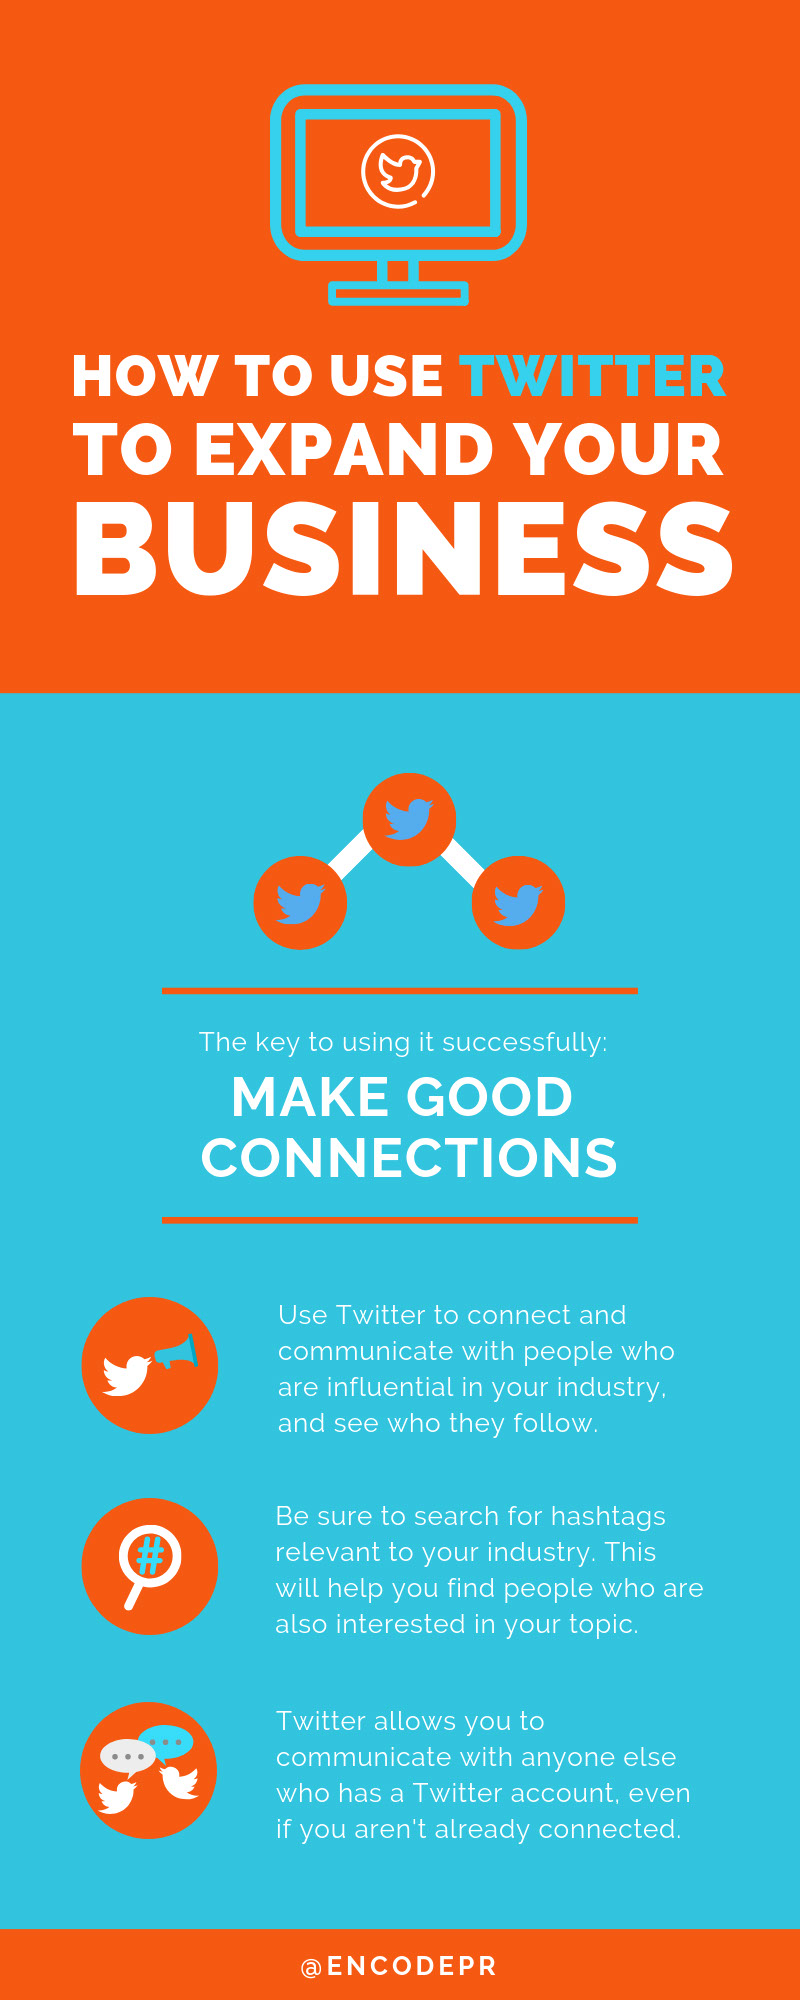 How To Use Twitter To Build Your Business - Infographic